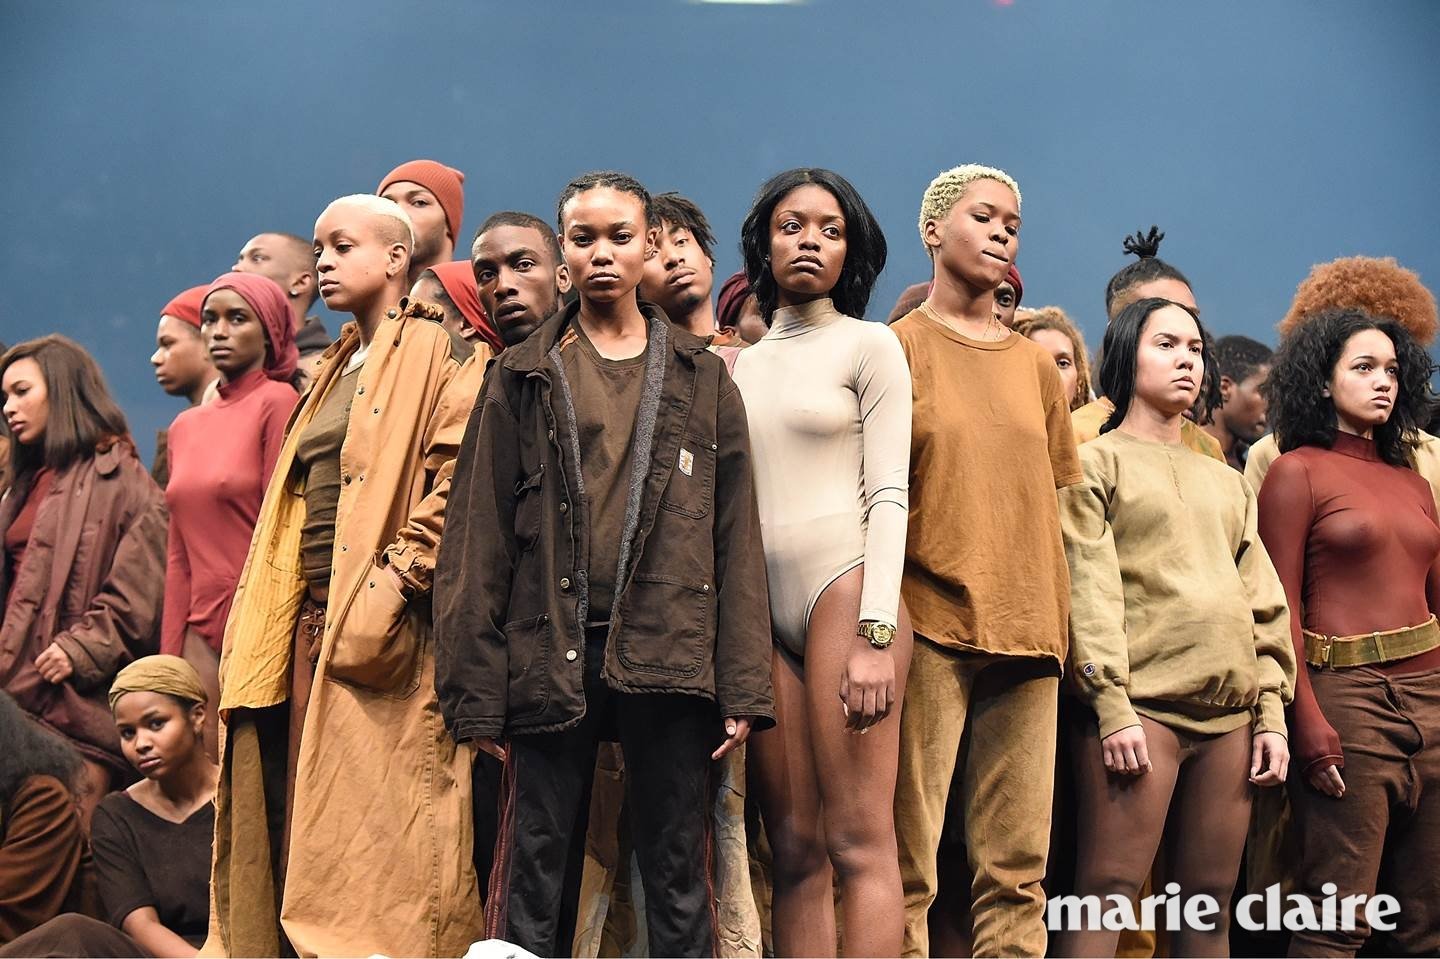 NEW YORK, NY - FEBRUARY 11: (EDITORS NOTE: Image contains nudity.) Models pose during Kanye West Yeezy Season 3 at Madison Square Garden on February 11, 2016 in New York City. (Photo by Kevin Mazur/Getty Images for Yeezy Season 3)